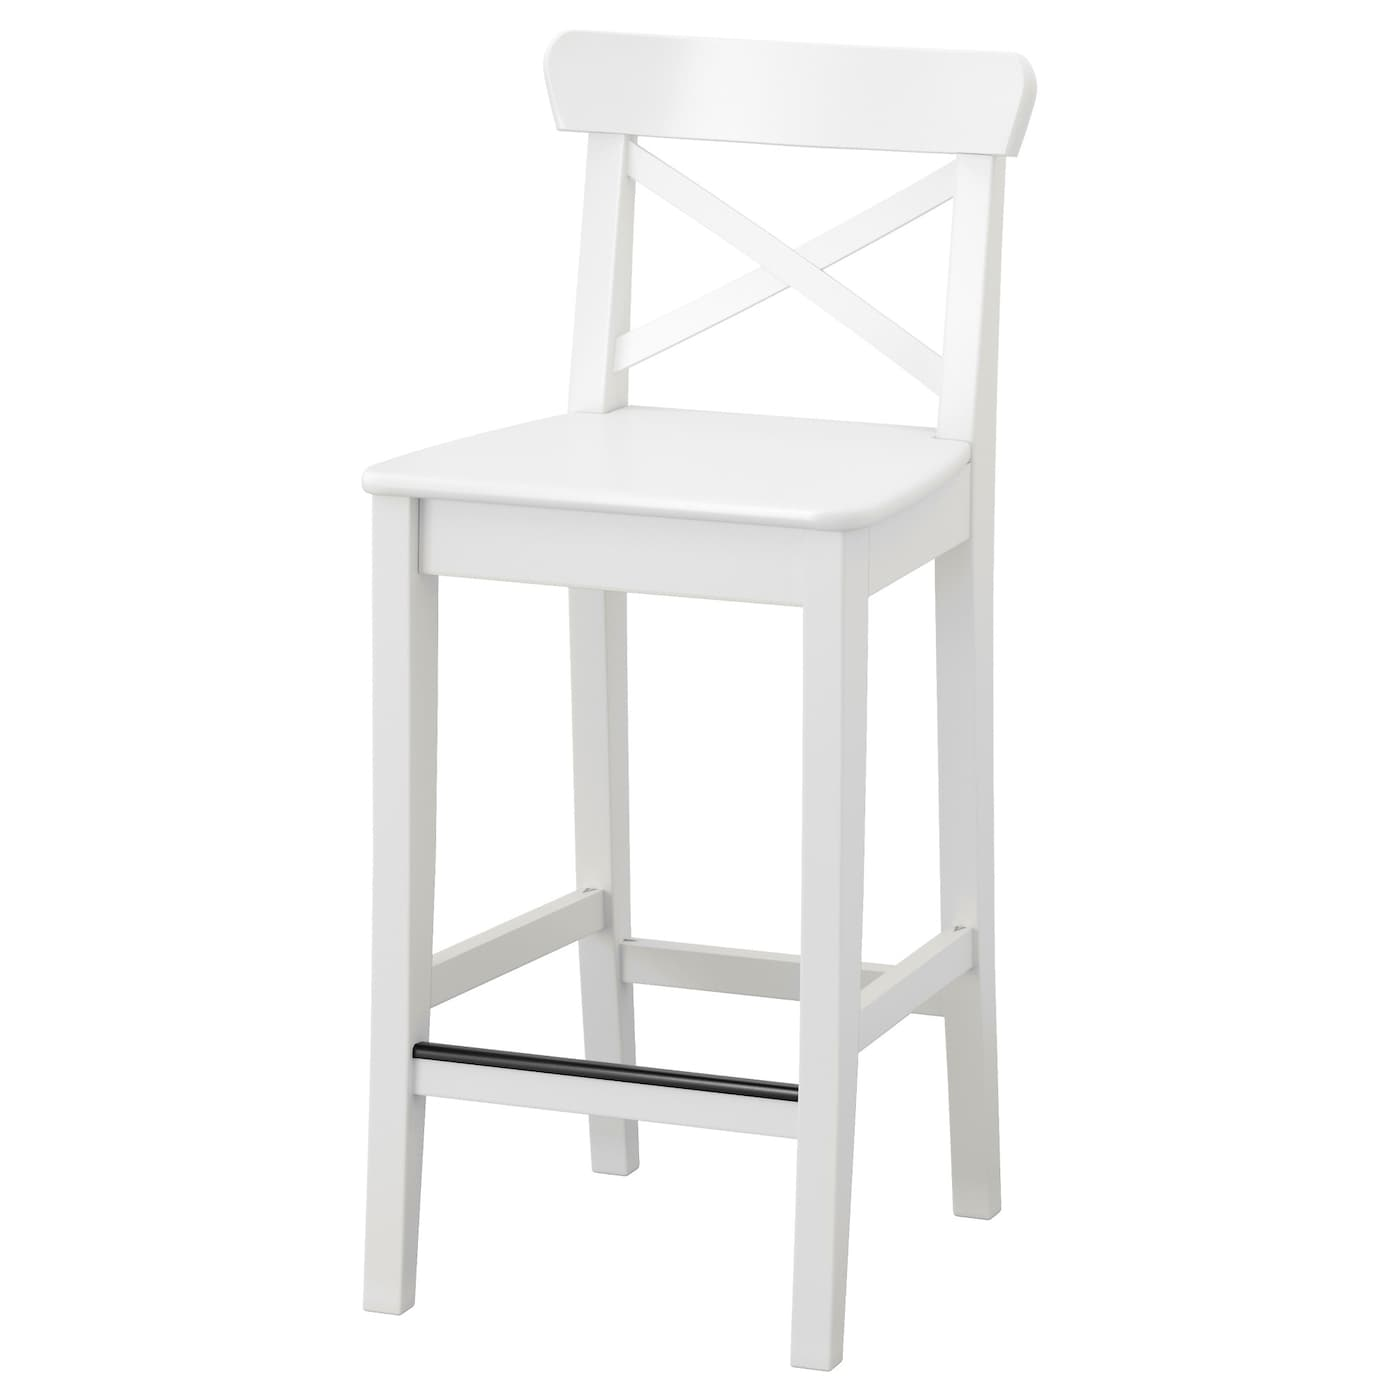 Ingolf bar stool with backrest white 63 cm ikea for Sgabelli ikea